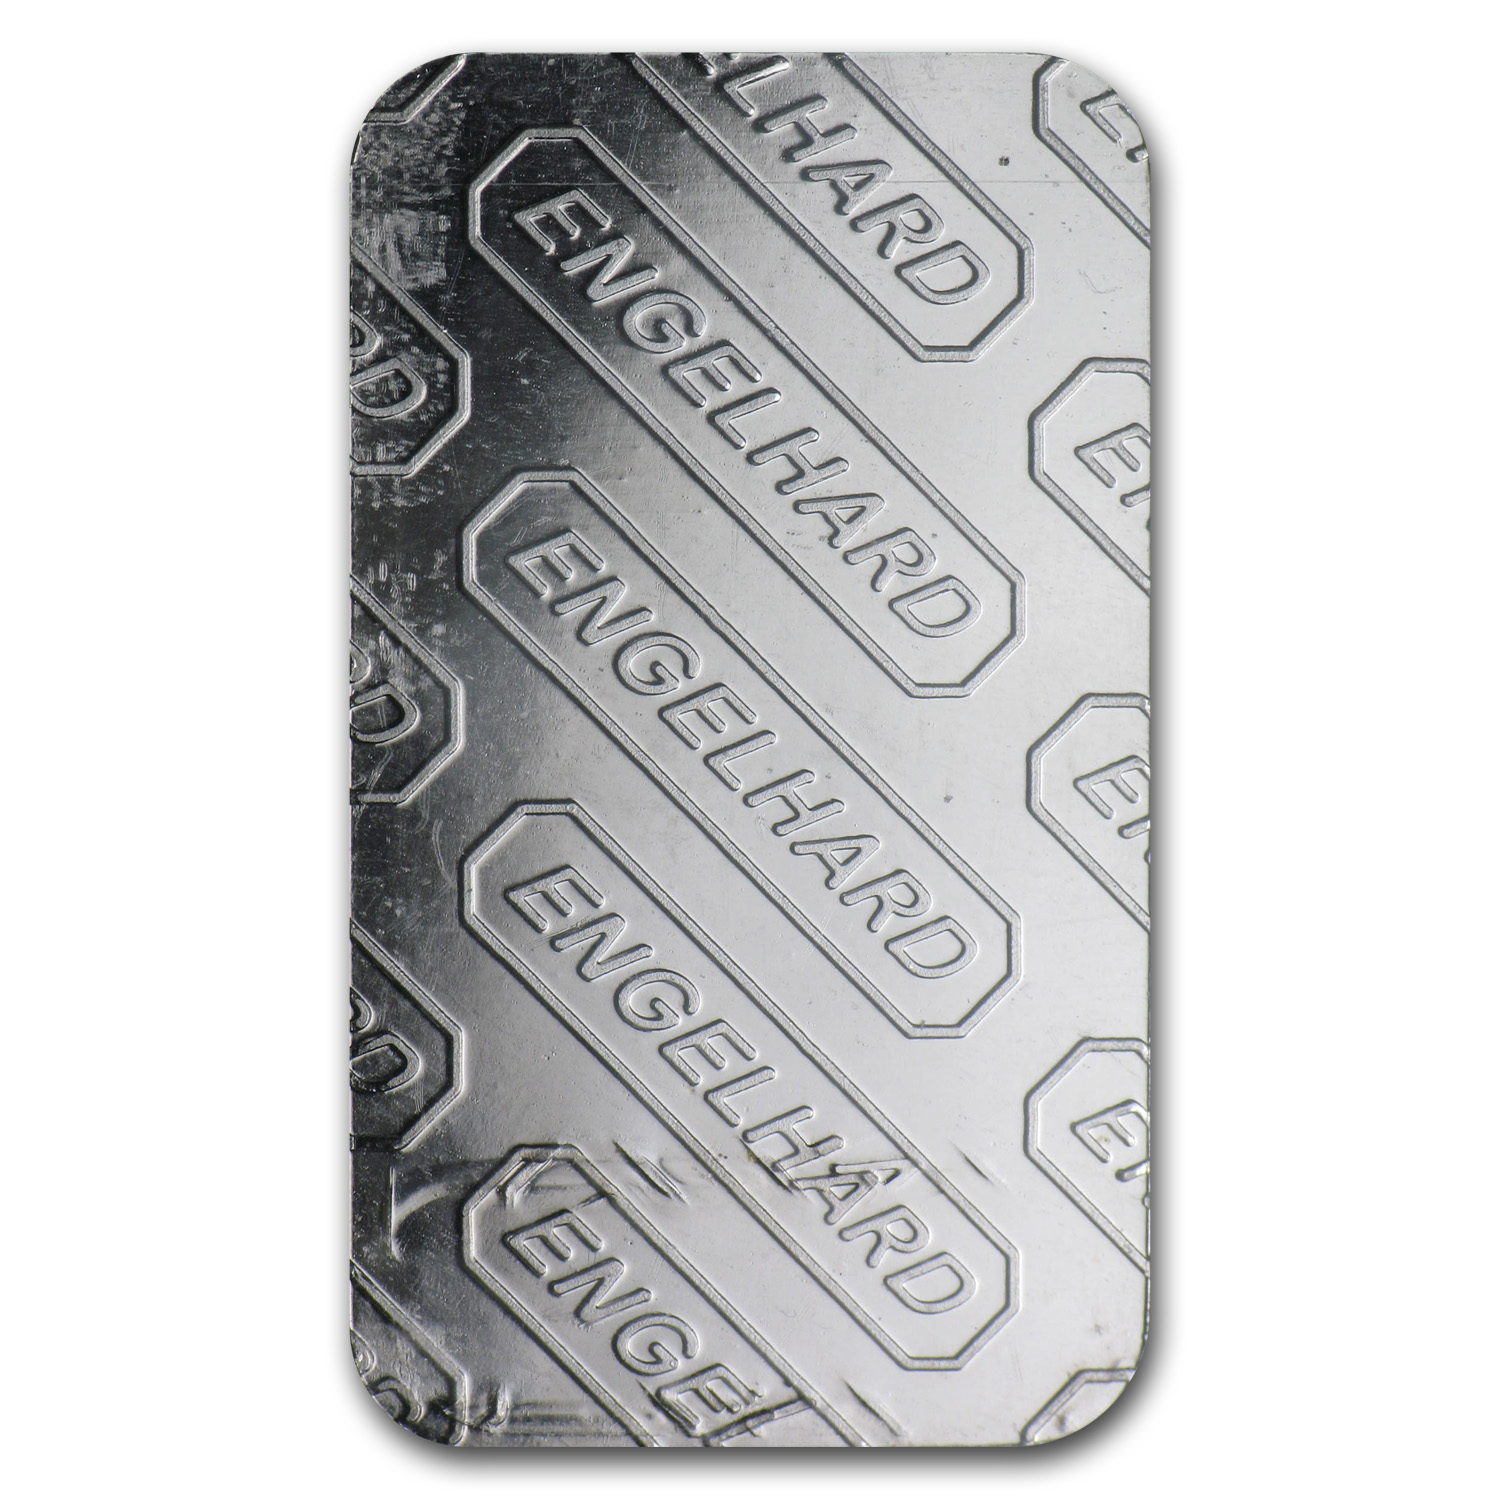 1/2 oz Platinum Bar - Engelhard (In Assay)